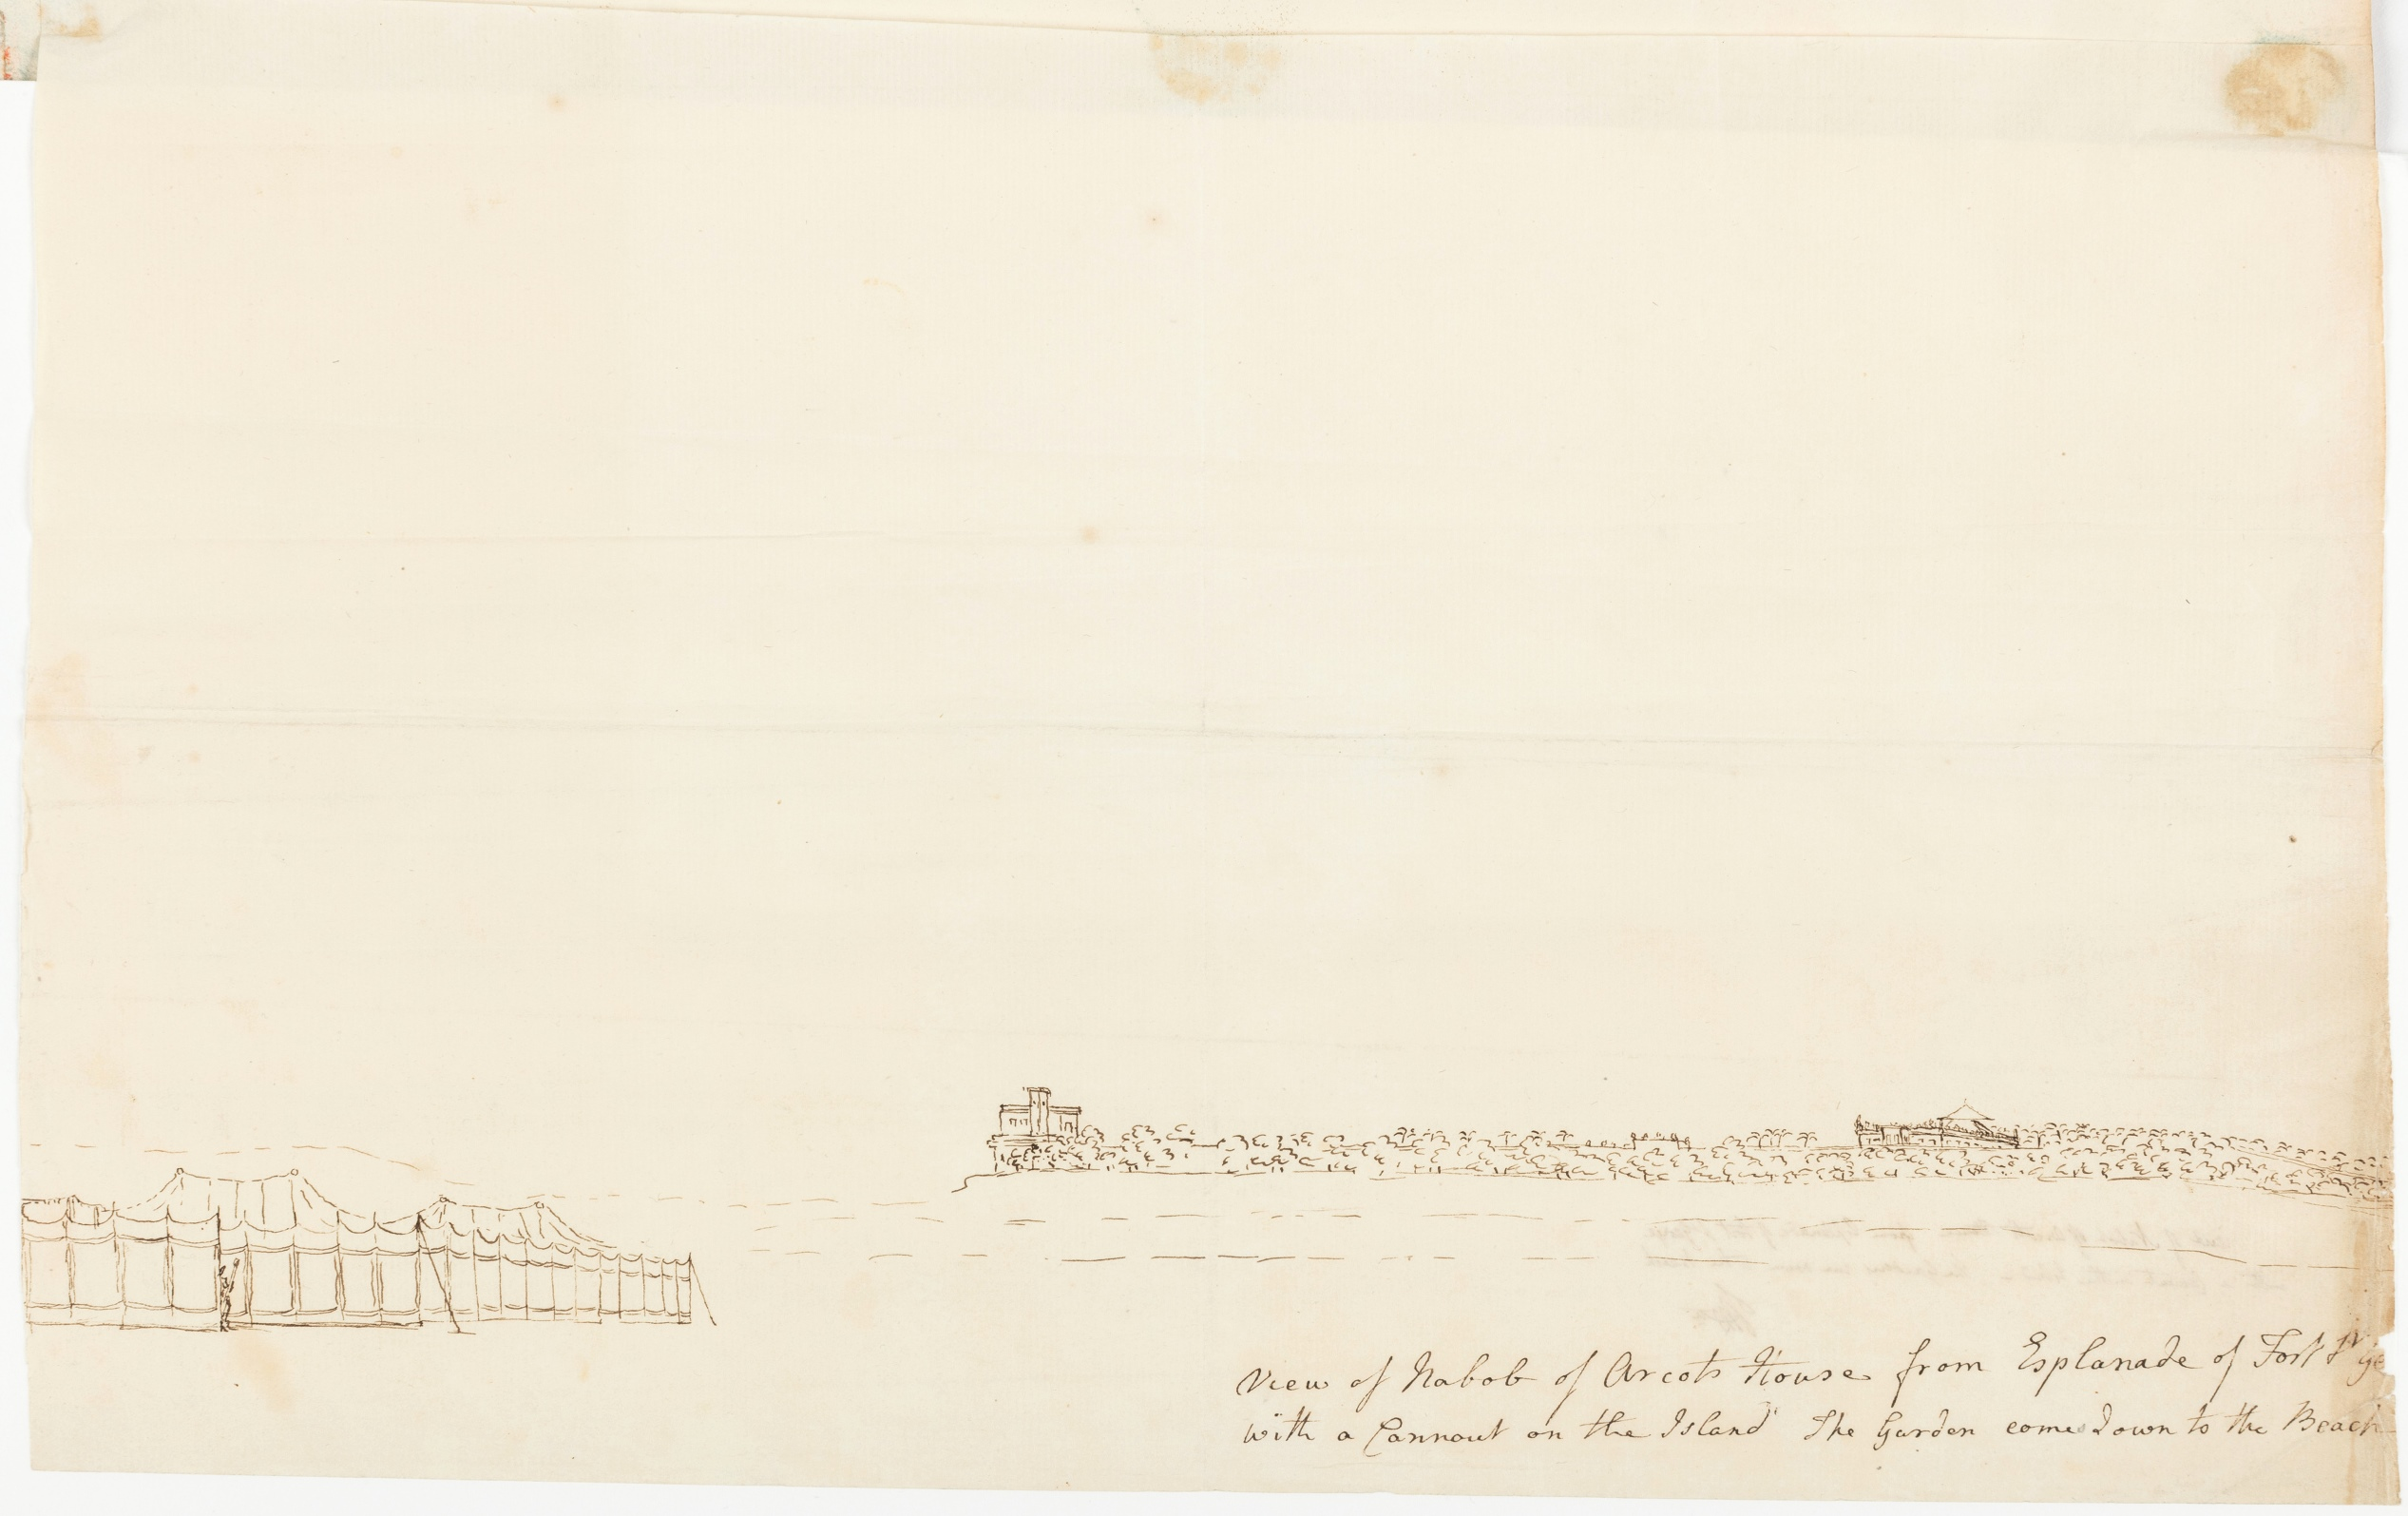 View of Nabob of Arcot's house from Esplanade of Fort St. Geo. with a Cannout on the Island. The garden comes down to the Beach